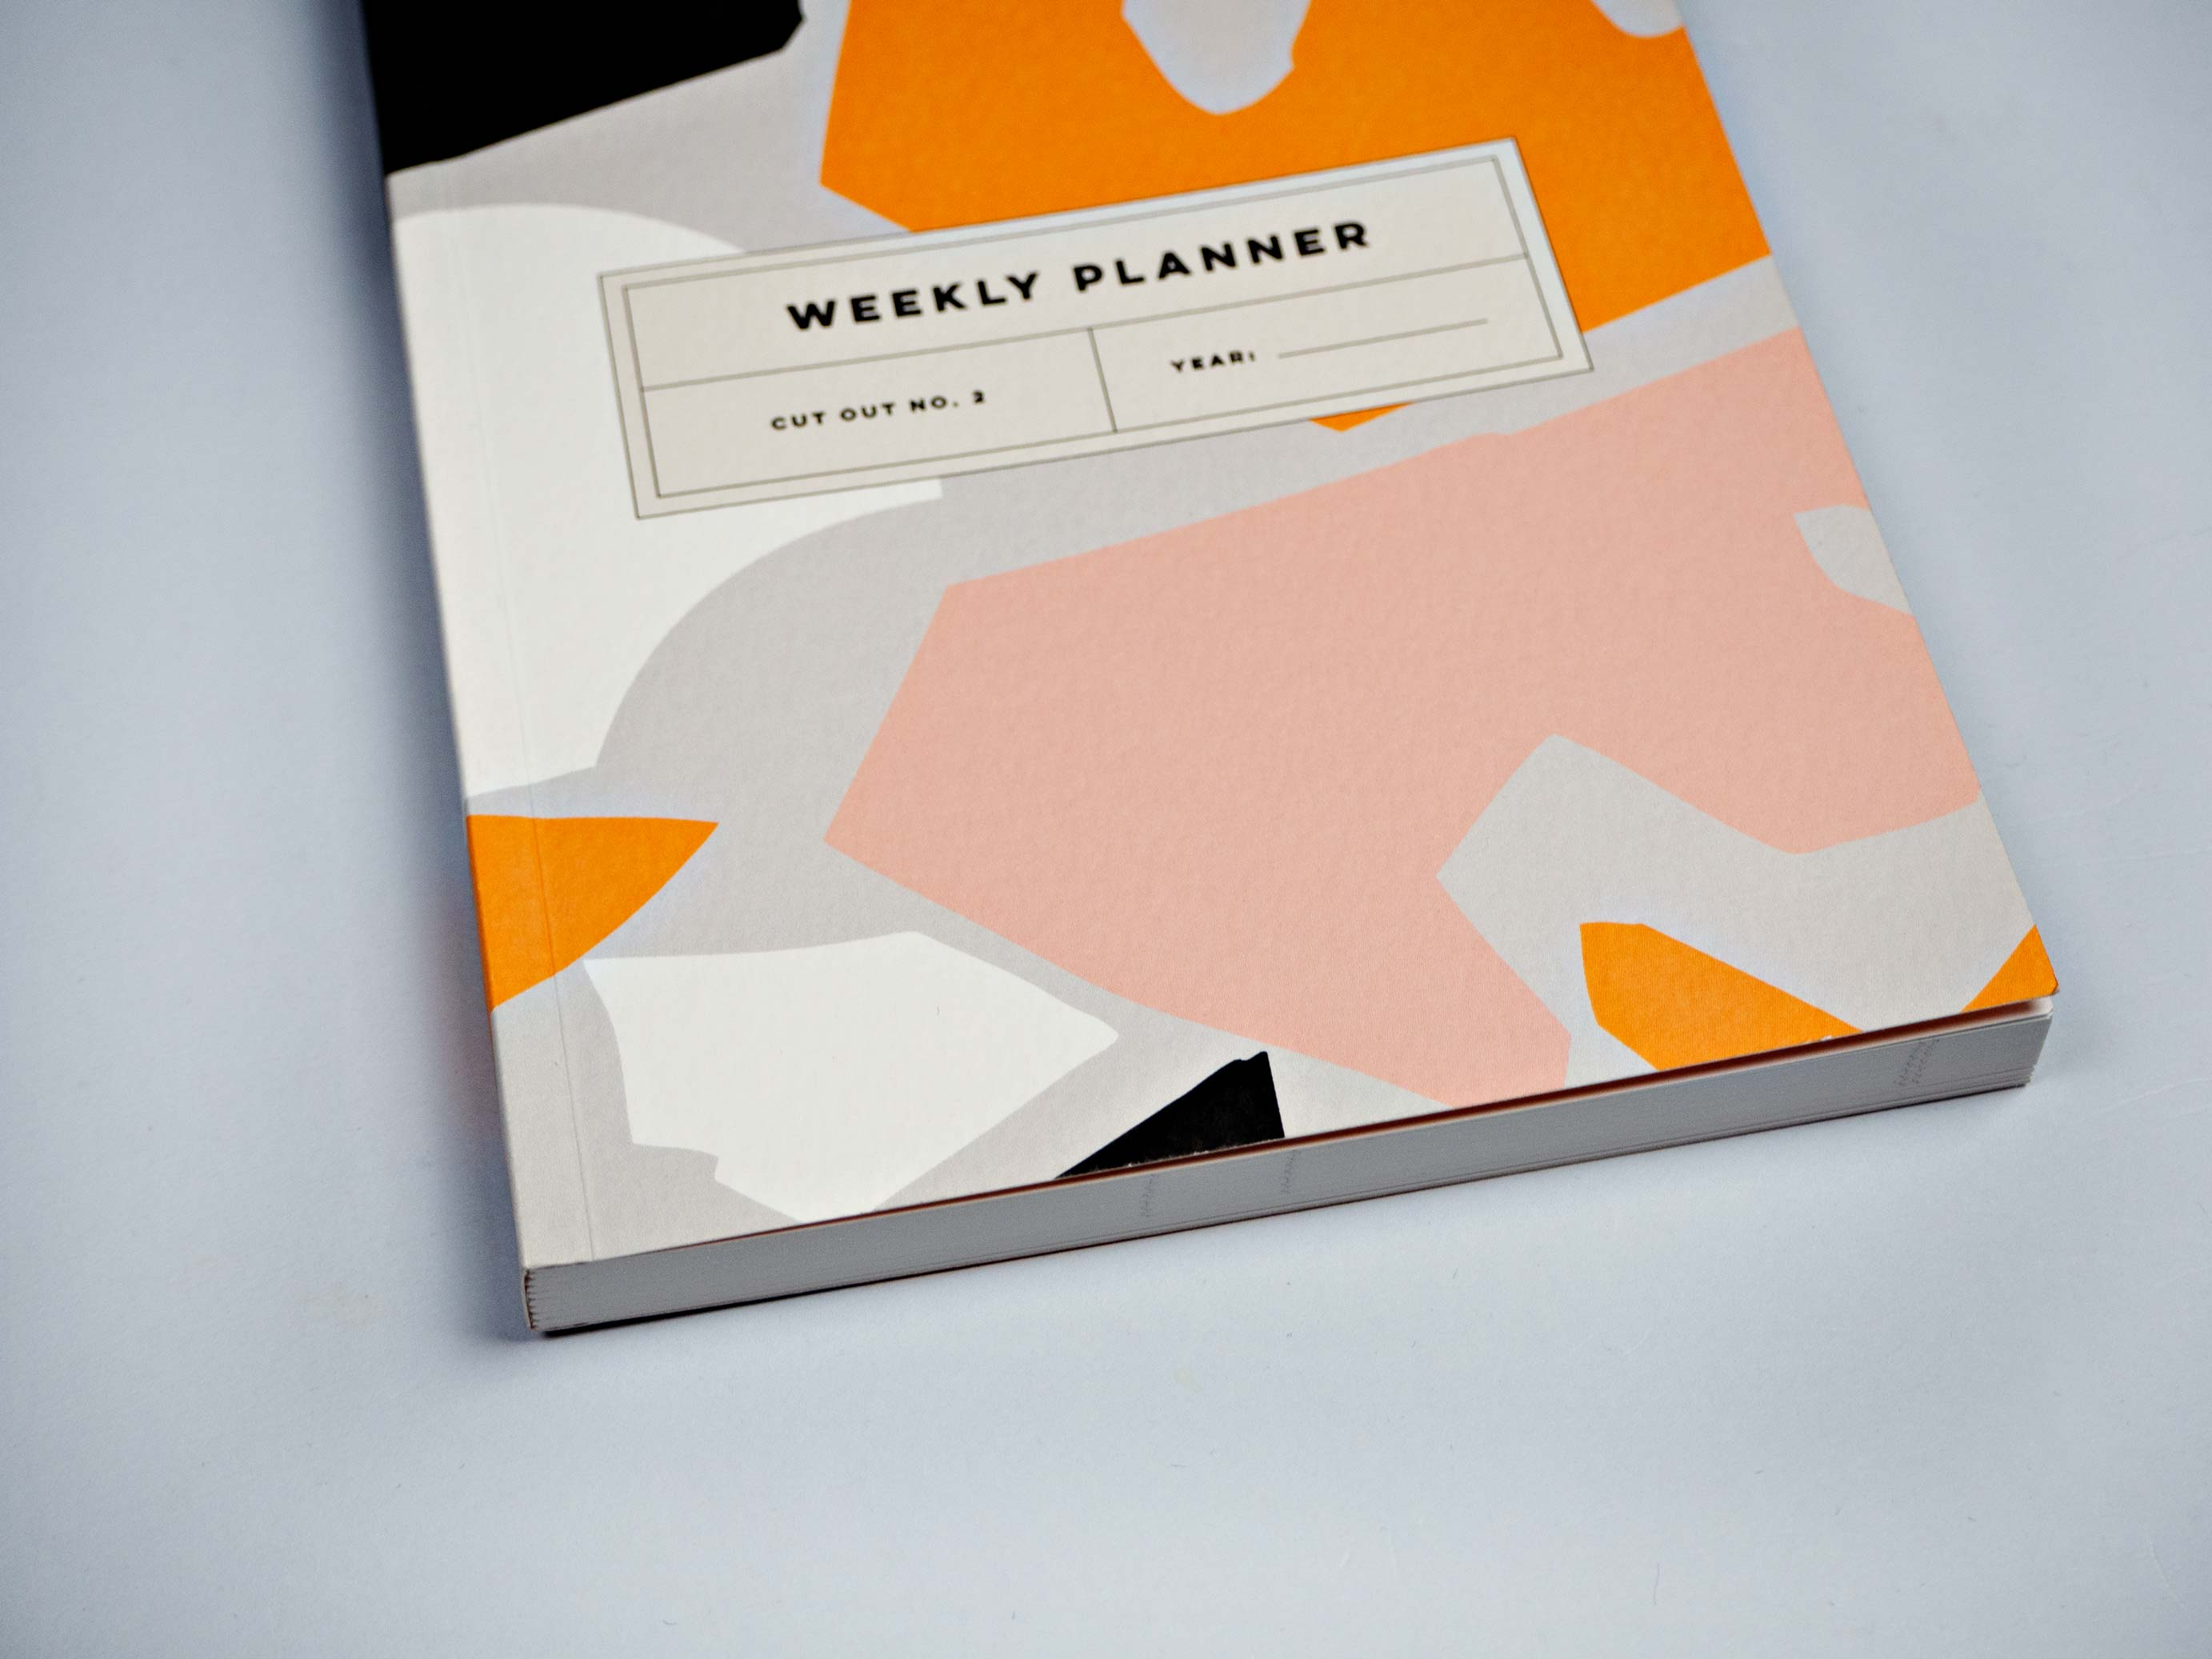 Weekly Planner A5 - Cut Out No 2